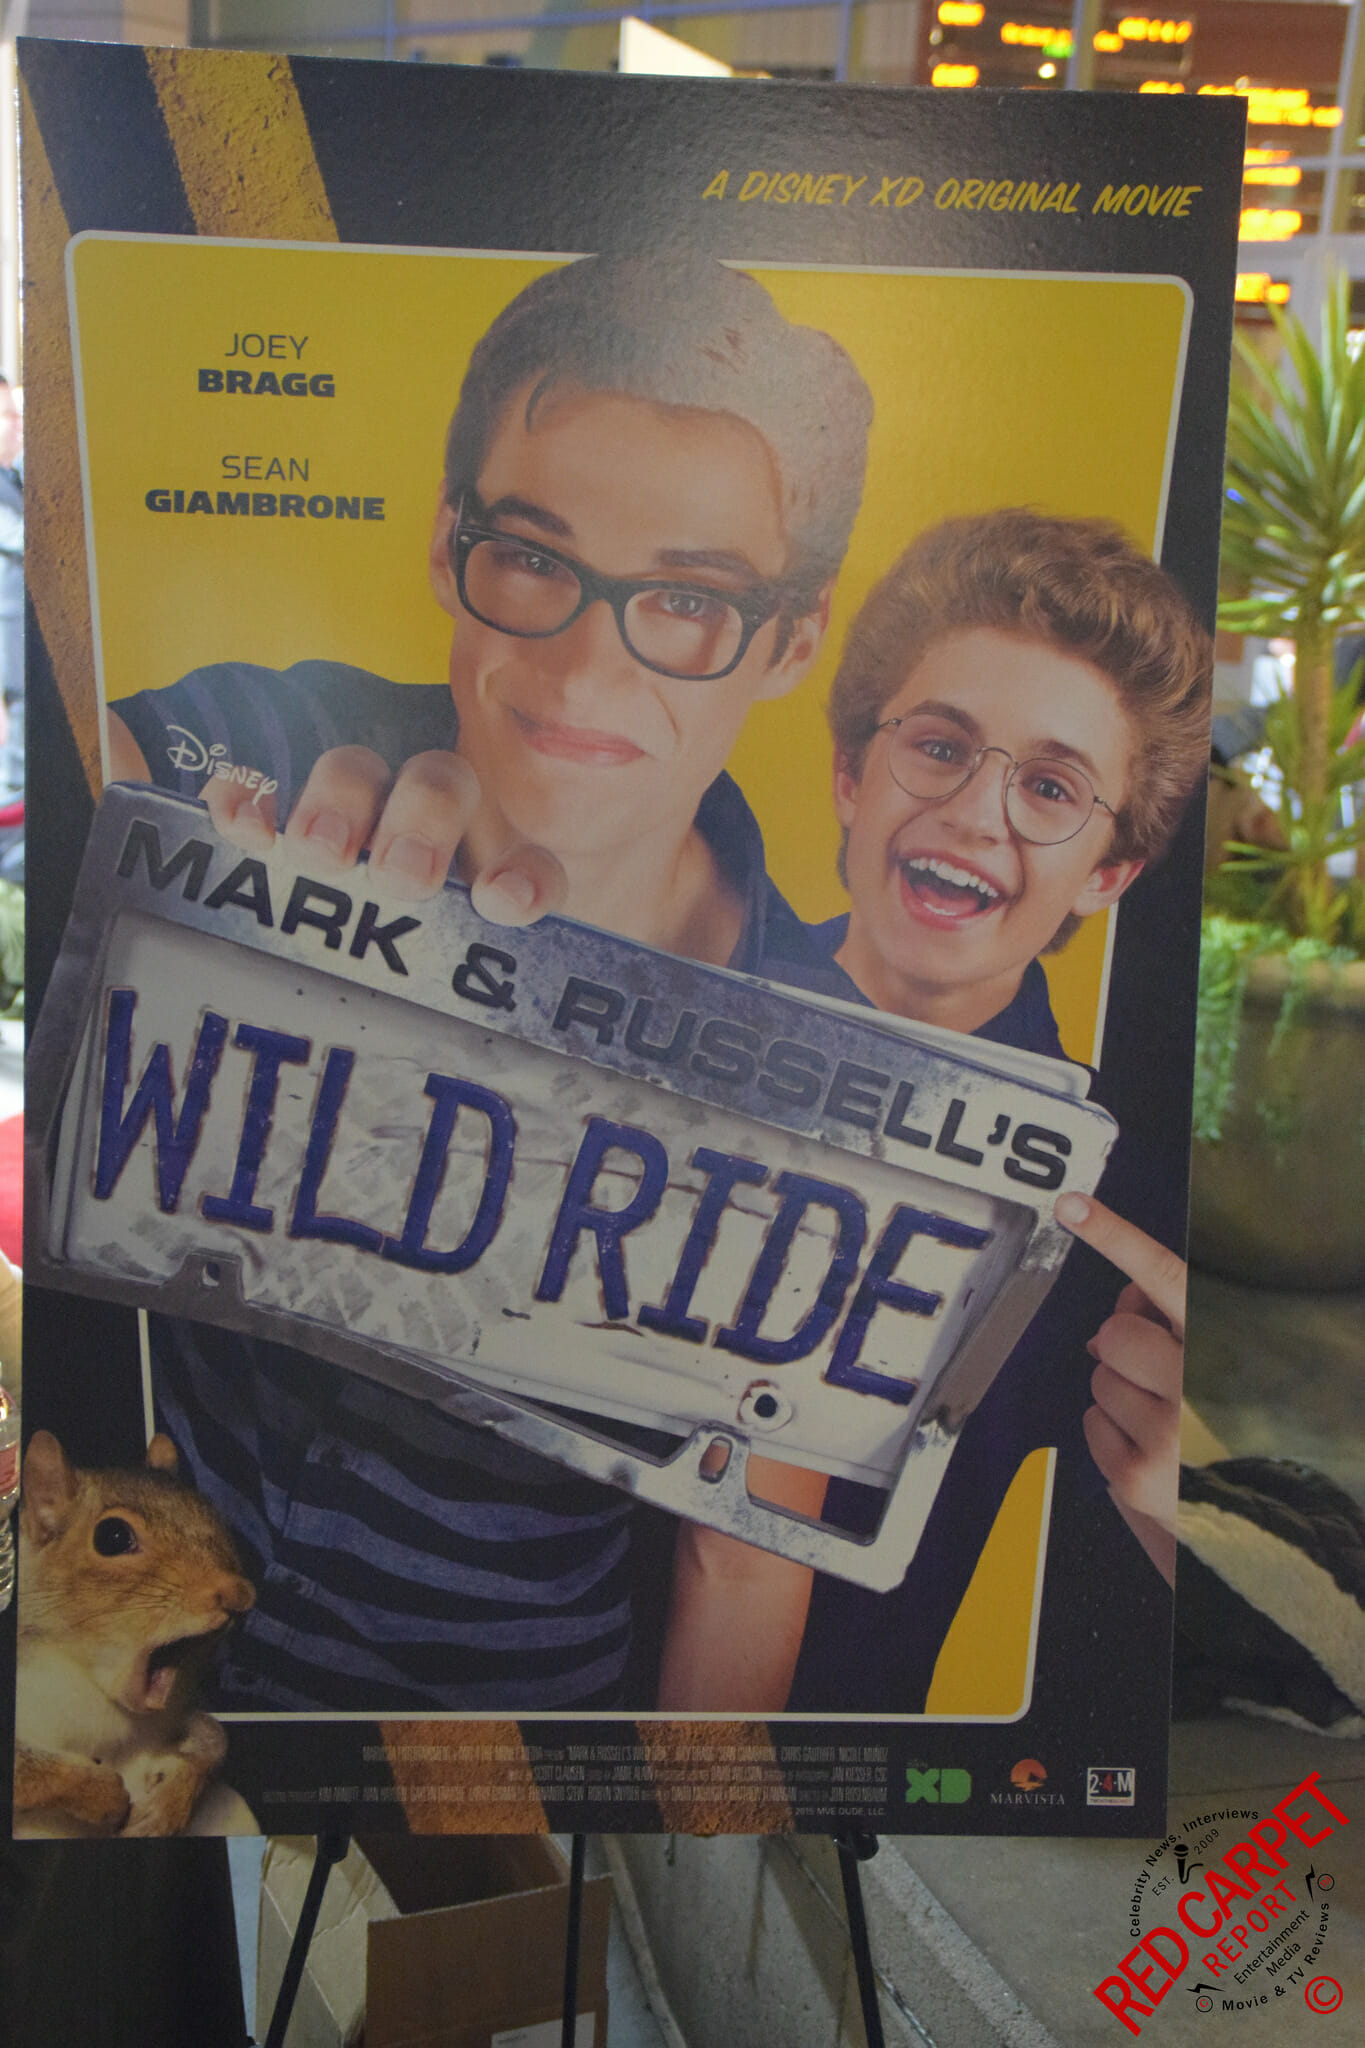 mark and russells wild ride